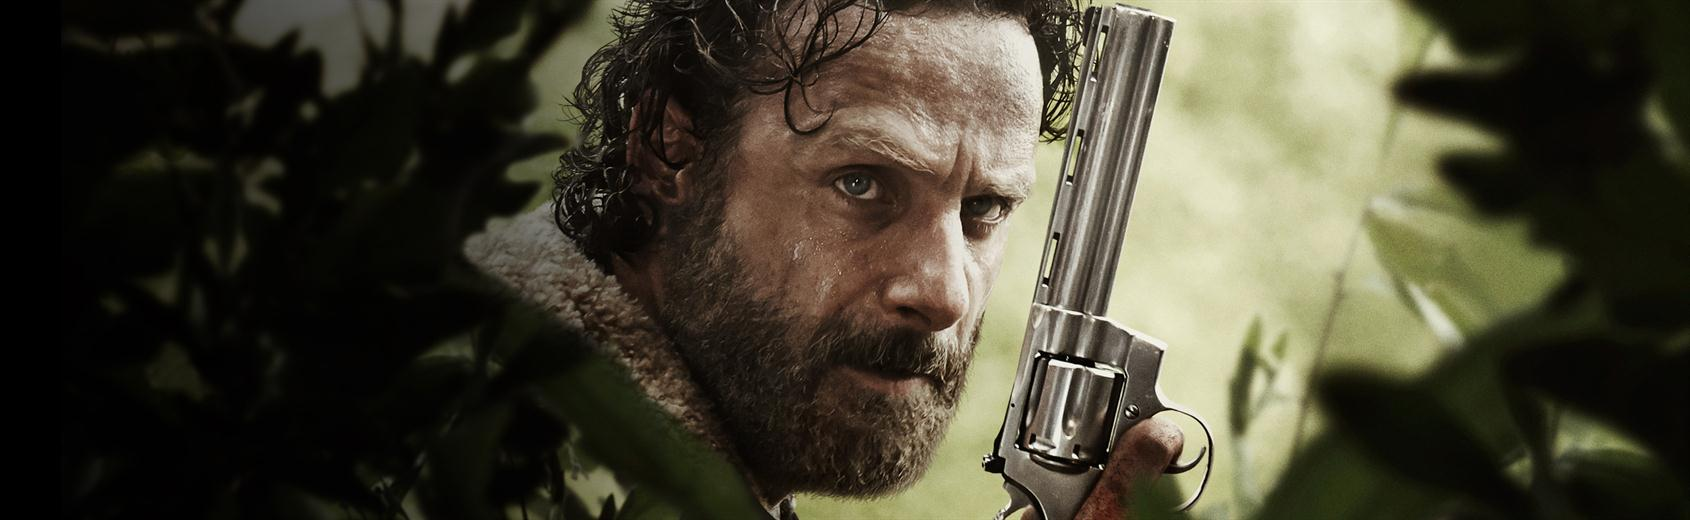 The Walking Dead Promo e sneak peek do episódio 5x07 - Crossed